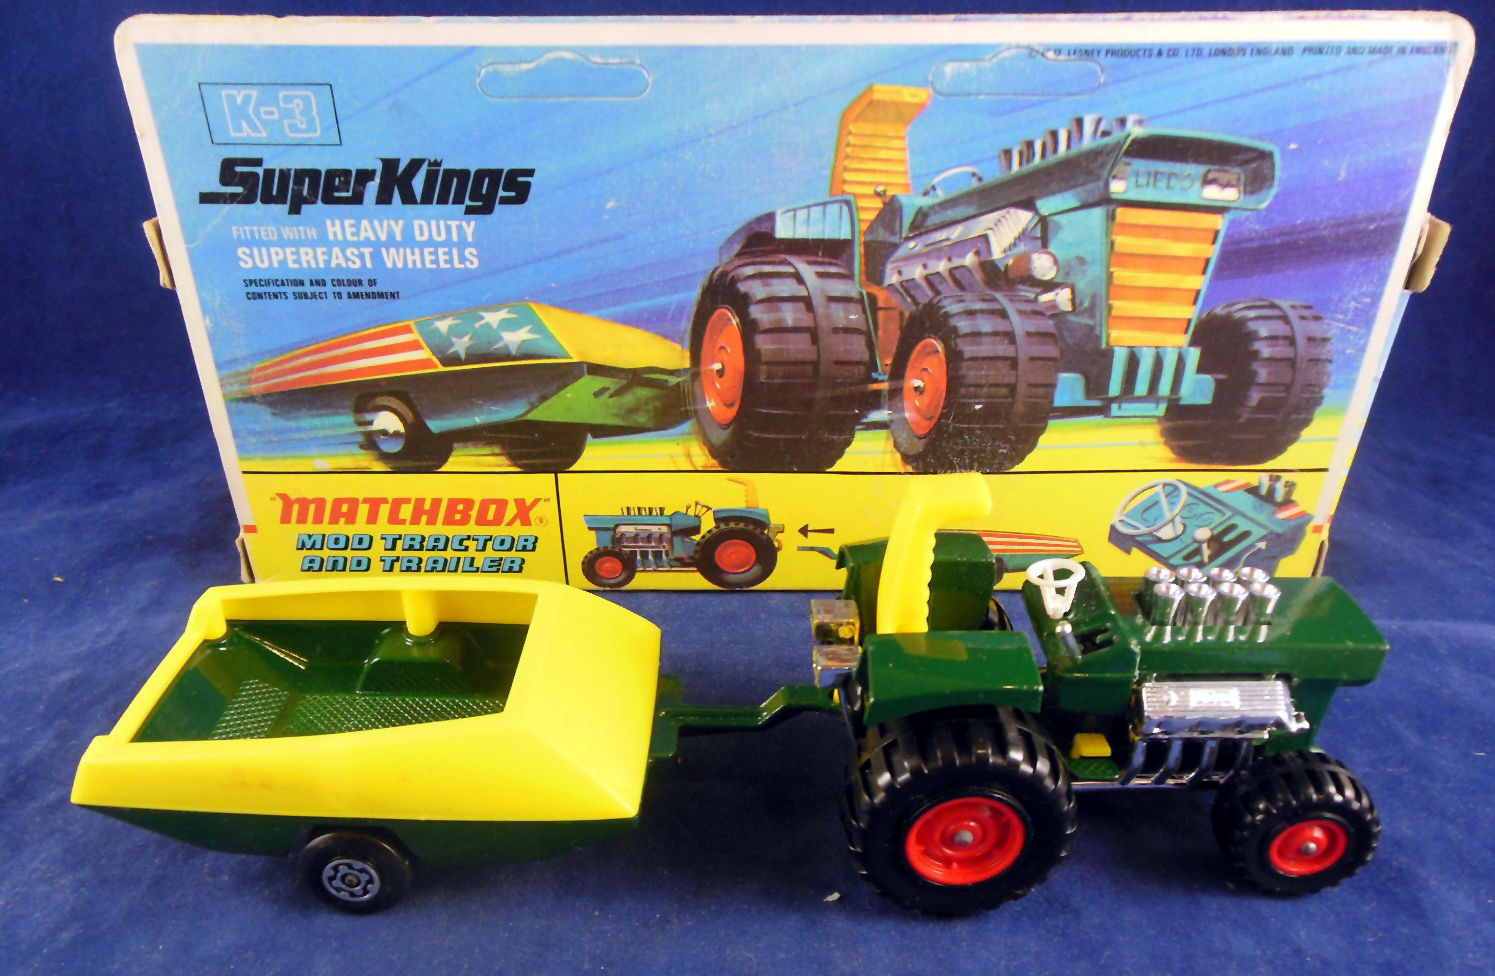 Mod Tractor and Trailer (K-3)